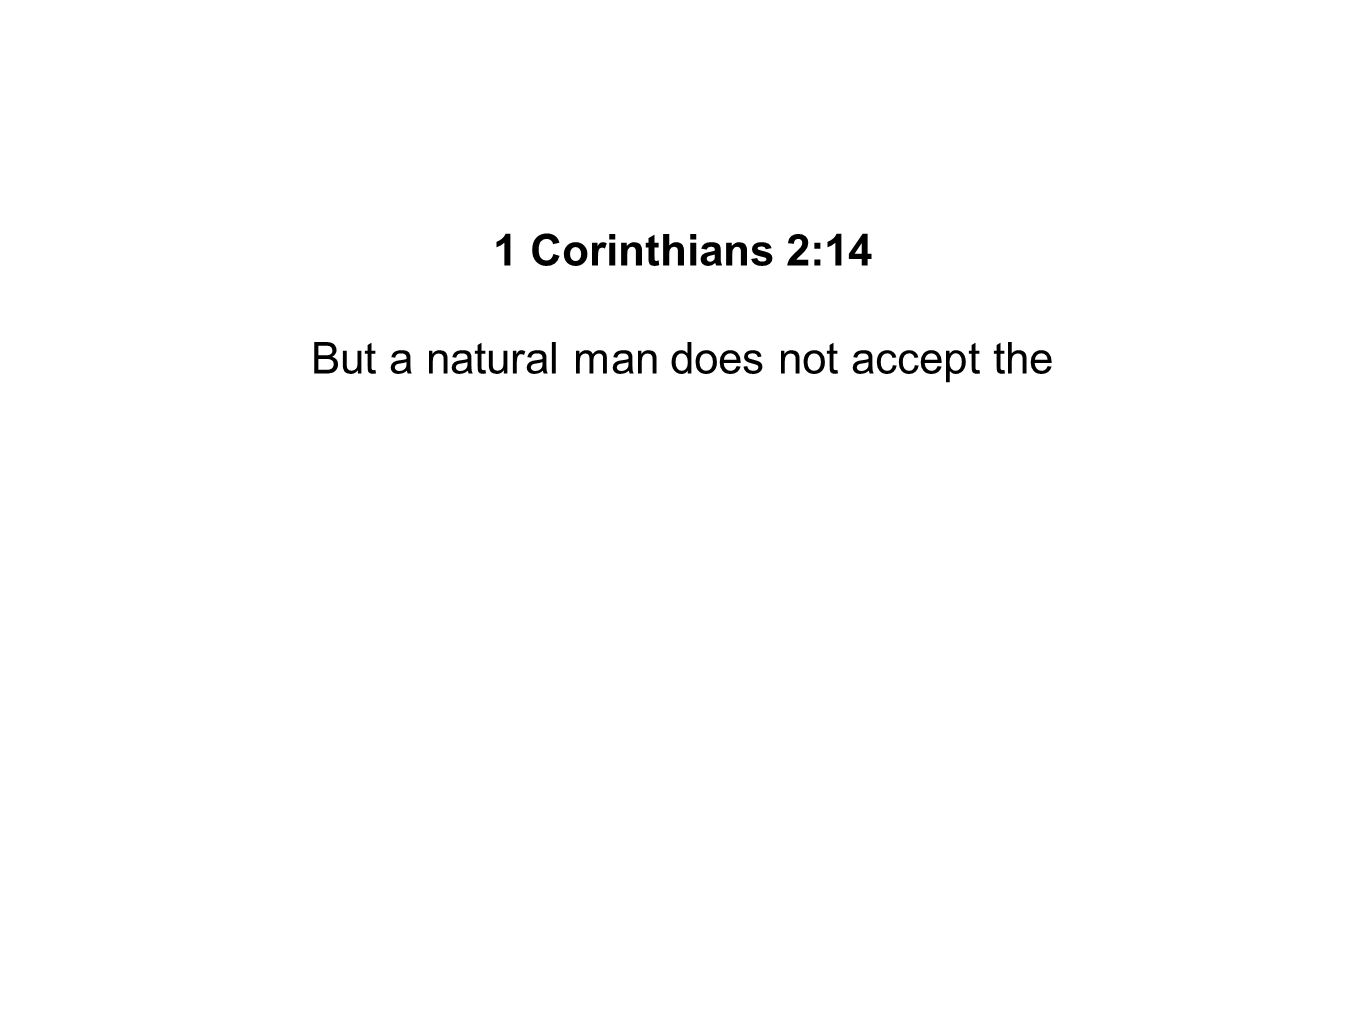 But a natural man does not accept the